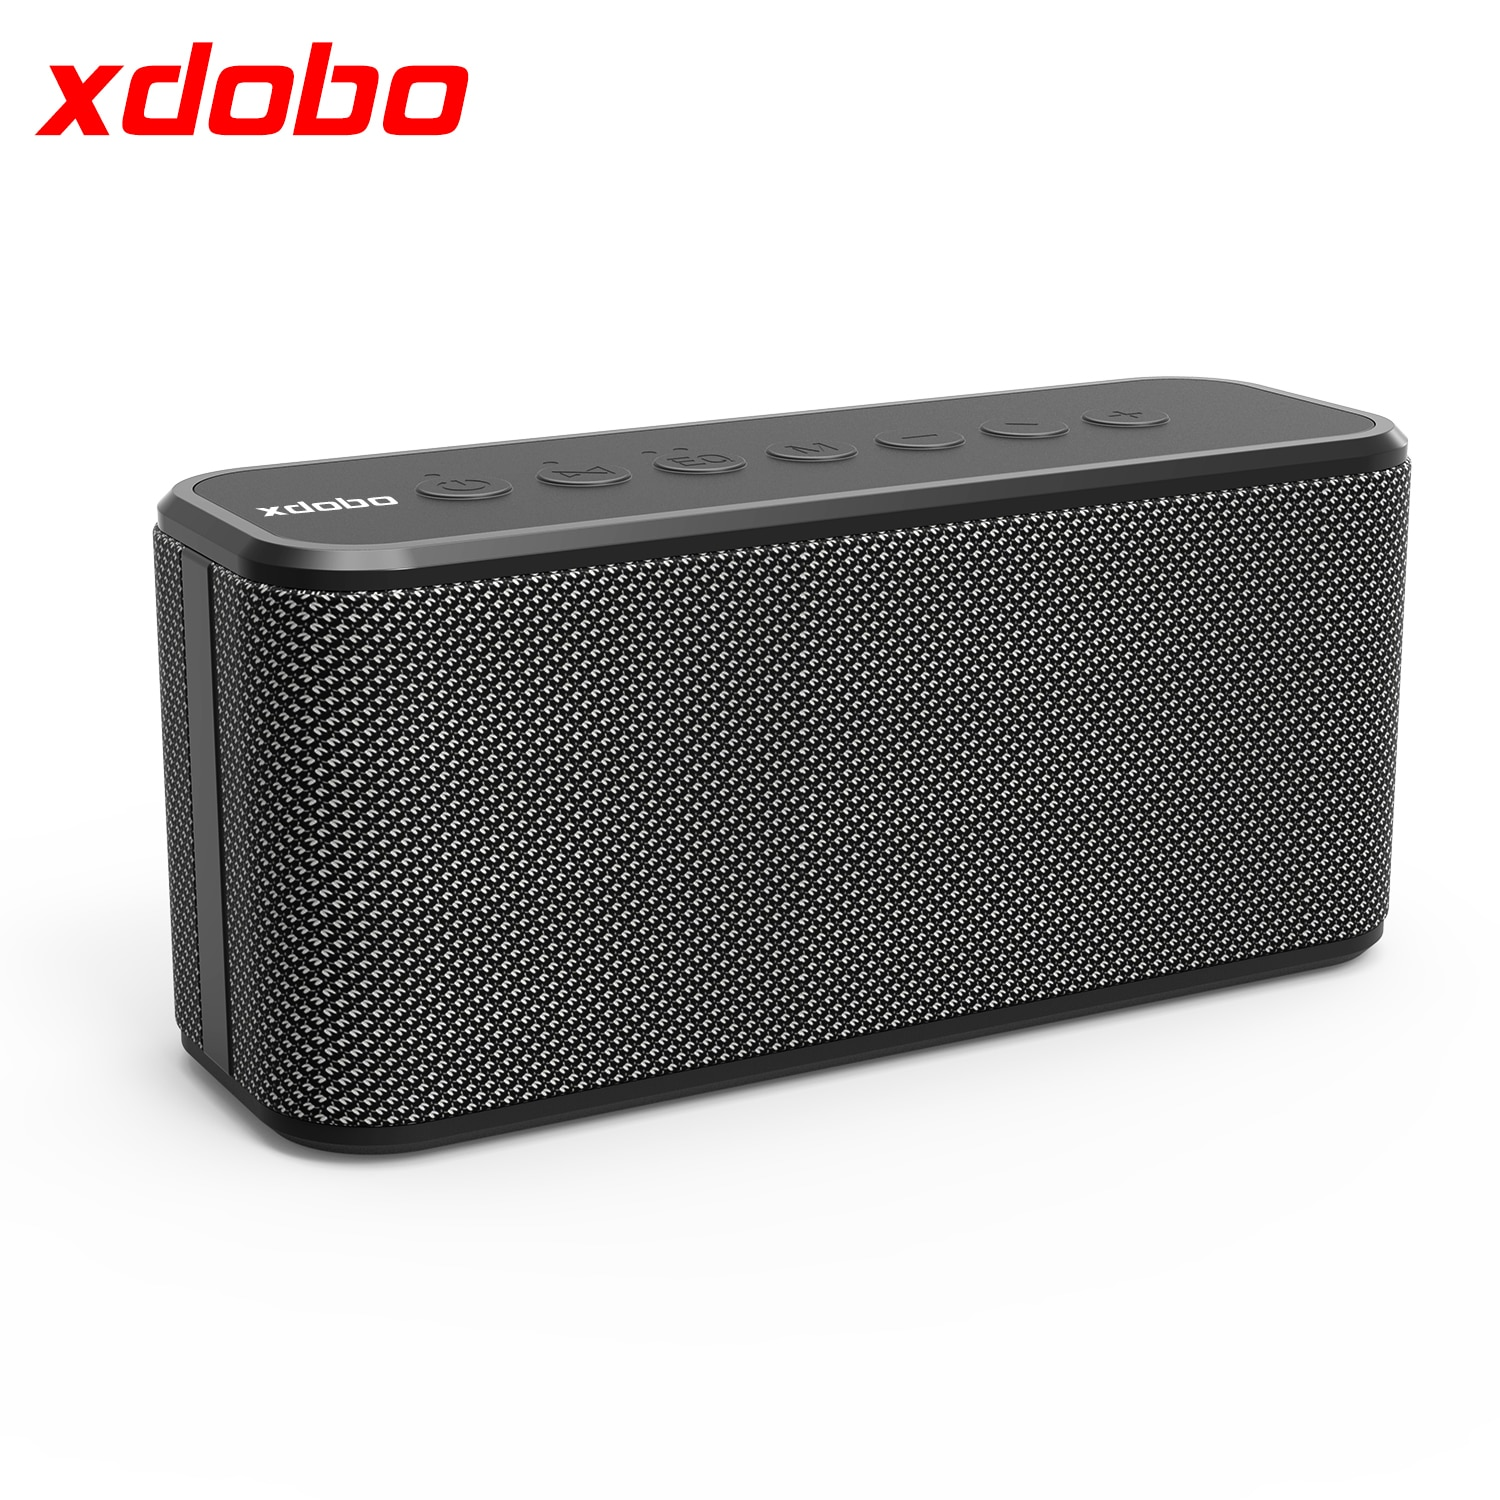 Promo Xdobo X8 Plus 80W High-power Speaker Portable Bluetooth-Compatible BT5.0 Wireless Super Bass Sound TWS Subwoofer IPX5 Boombox